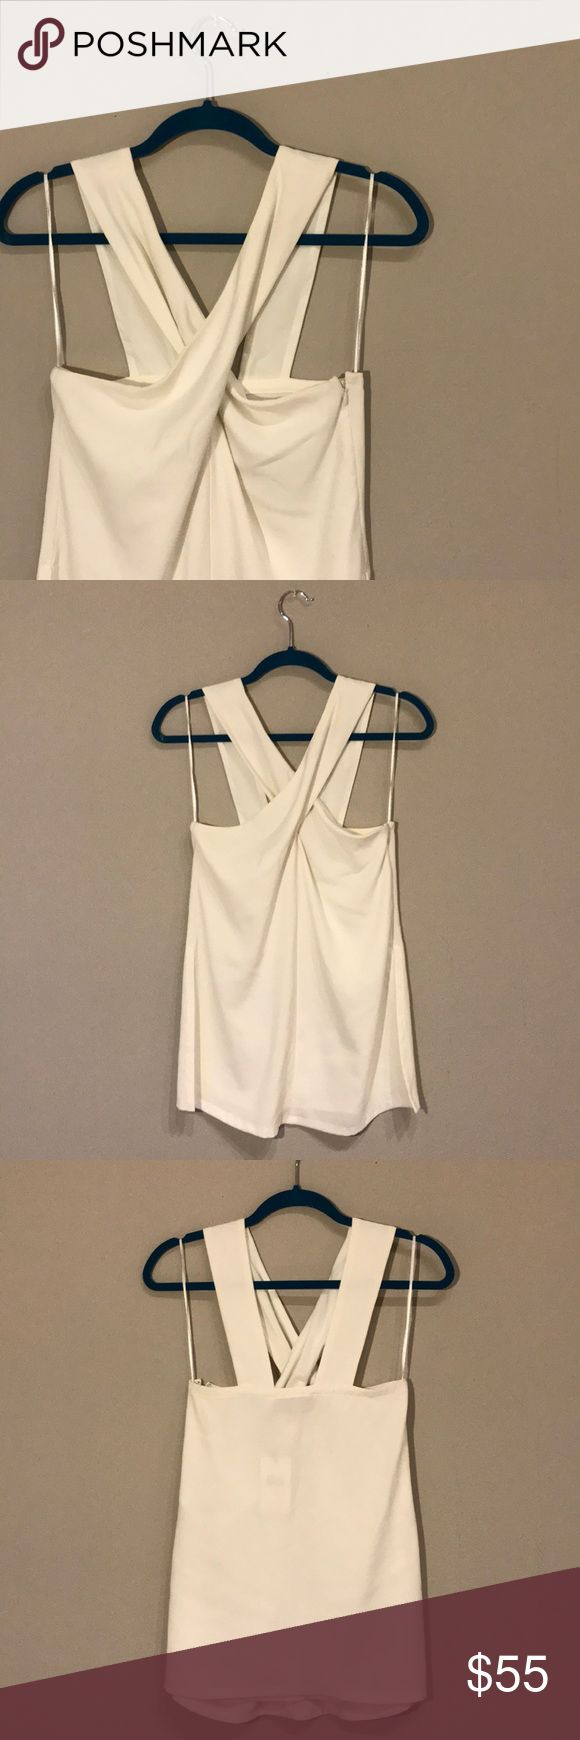 Cream Twist Top Brand New! Great for summer with a nice pair of skinny jeans and heels! Twisted at the front to give a sexy look. Side zipper for easy wear and high slits on the sides. 7 For All Mankind Tops